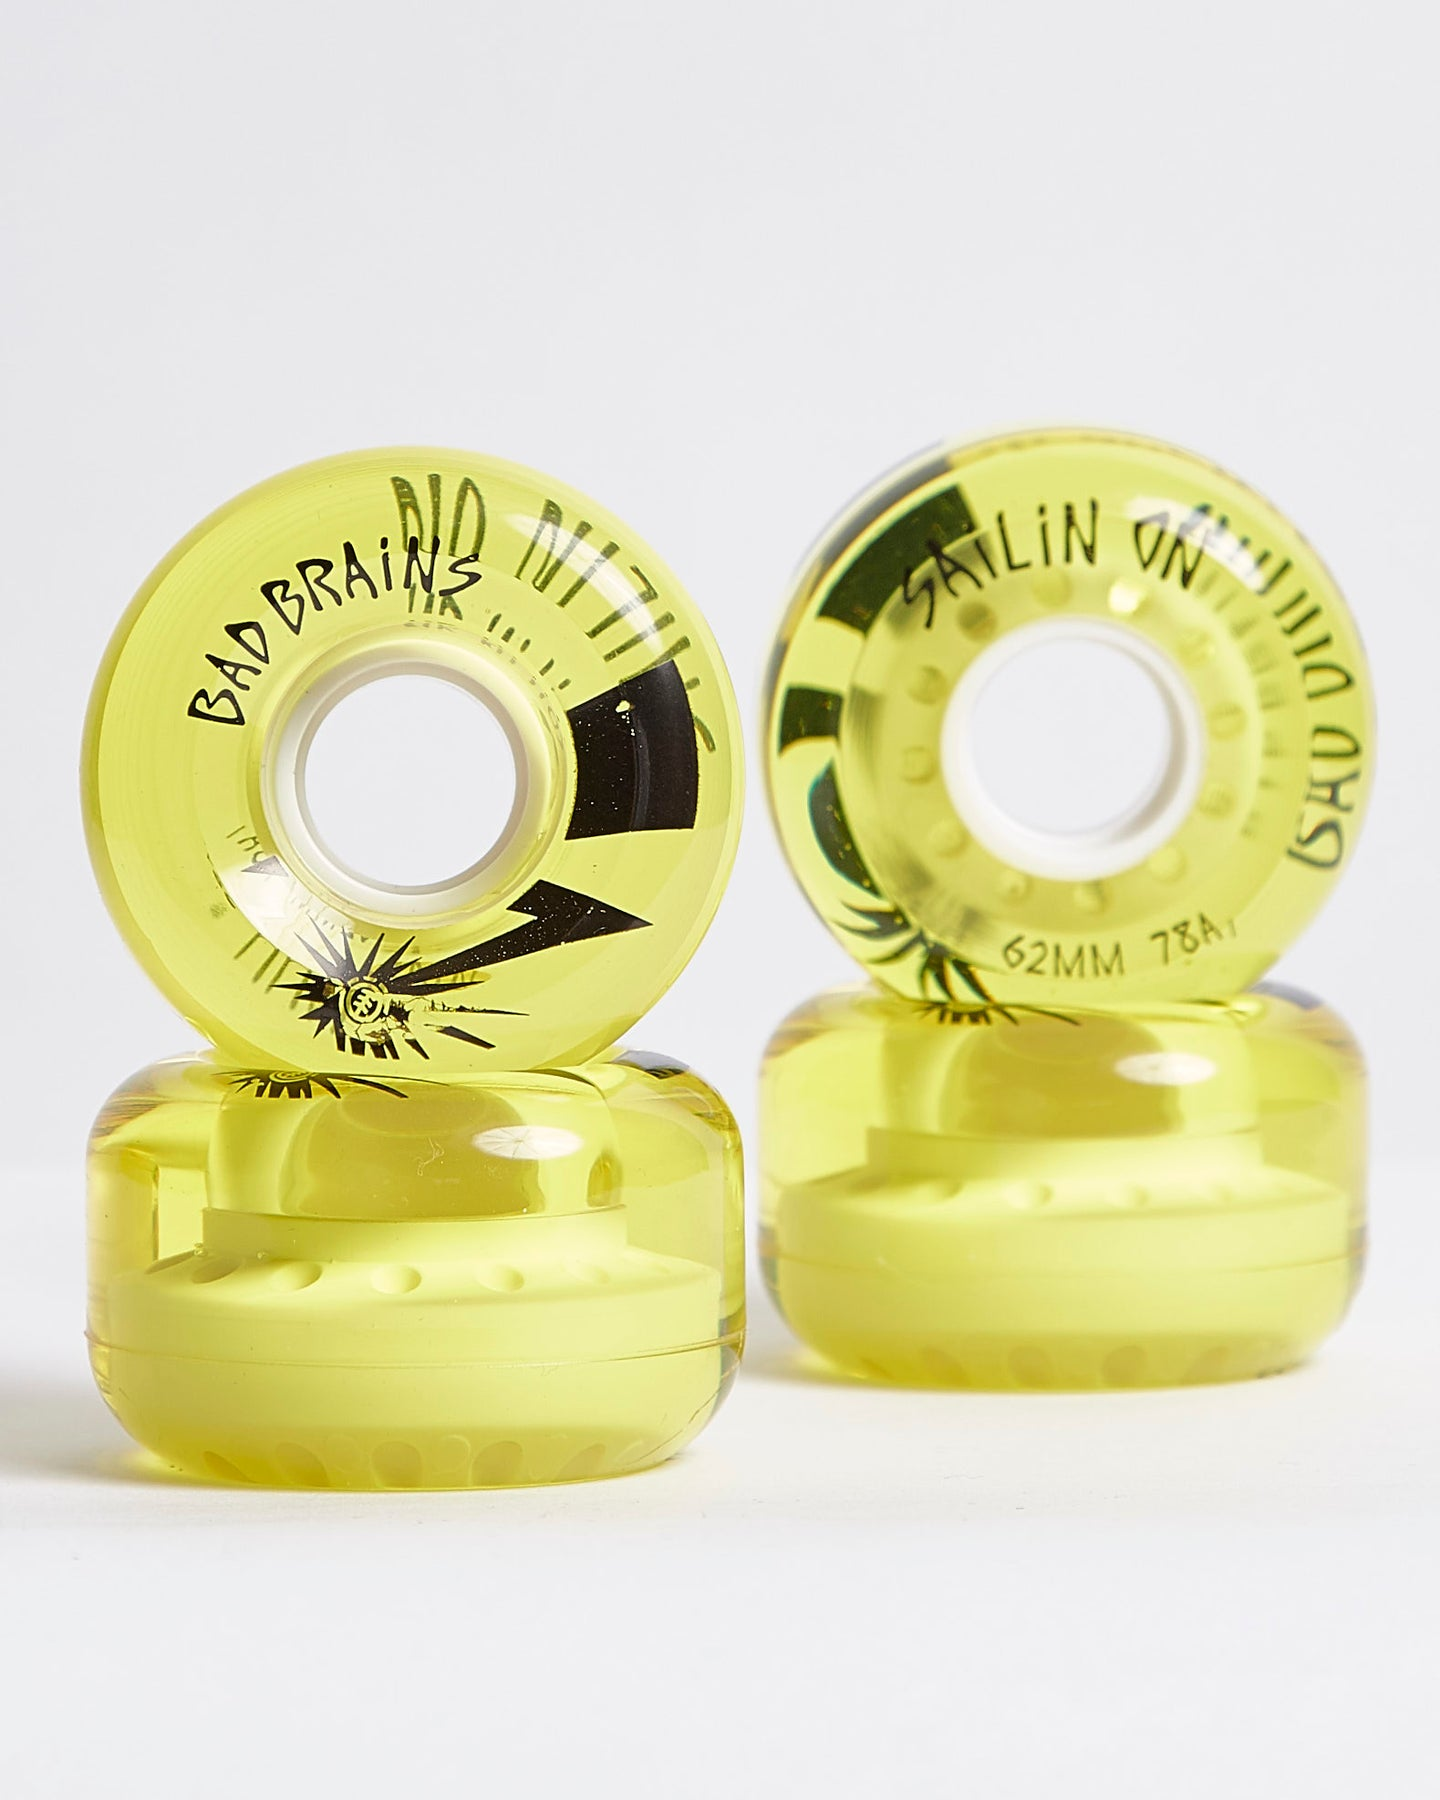 Element Bad Brains Sailin On Filmer 62mm Wheels